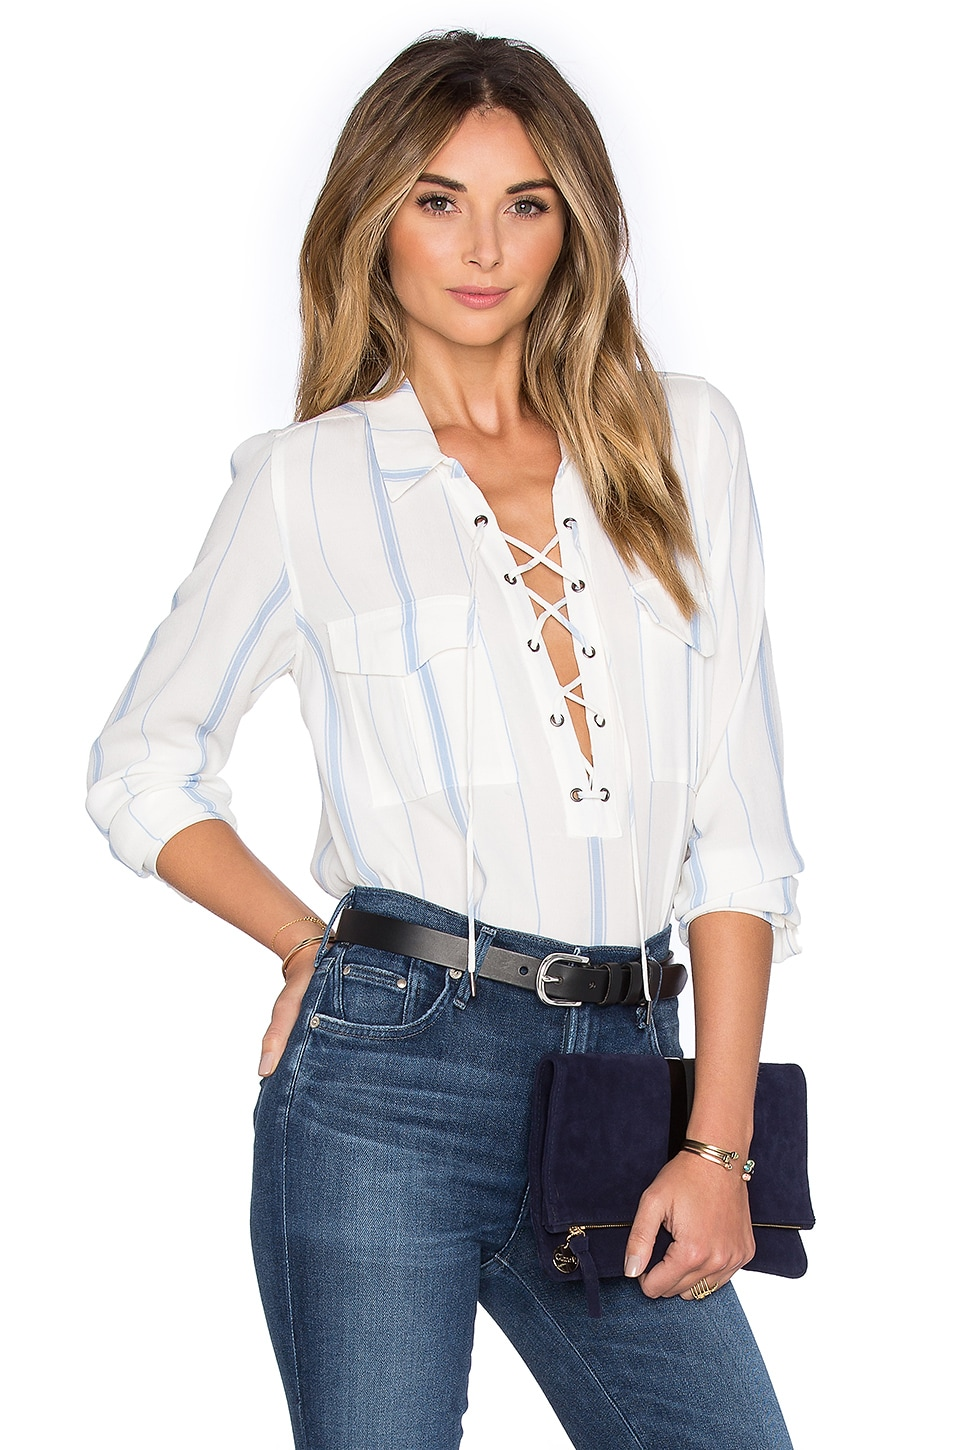 L'Academie x REVOLVE The Safari Blouse in Blue Stripe